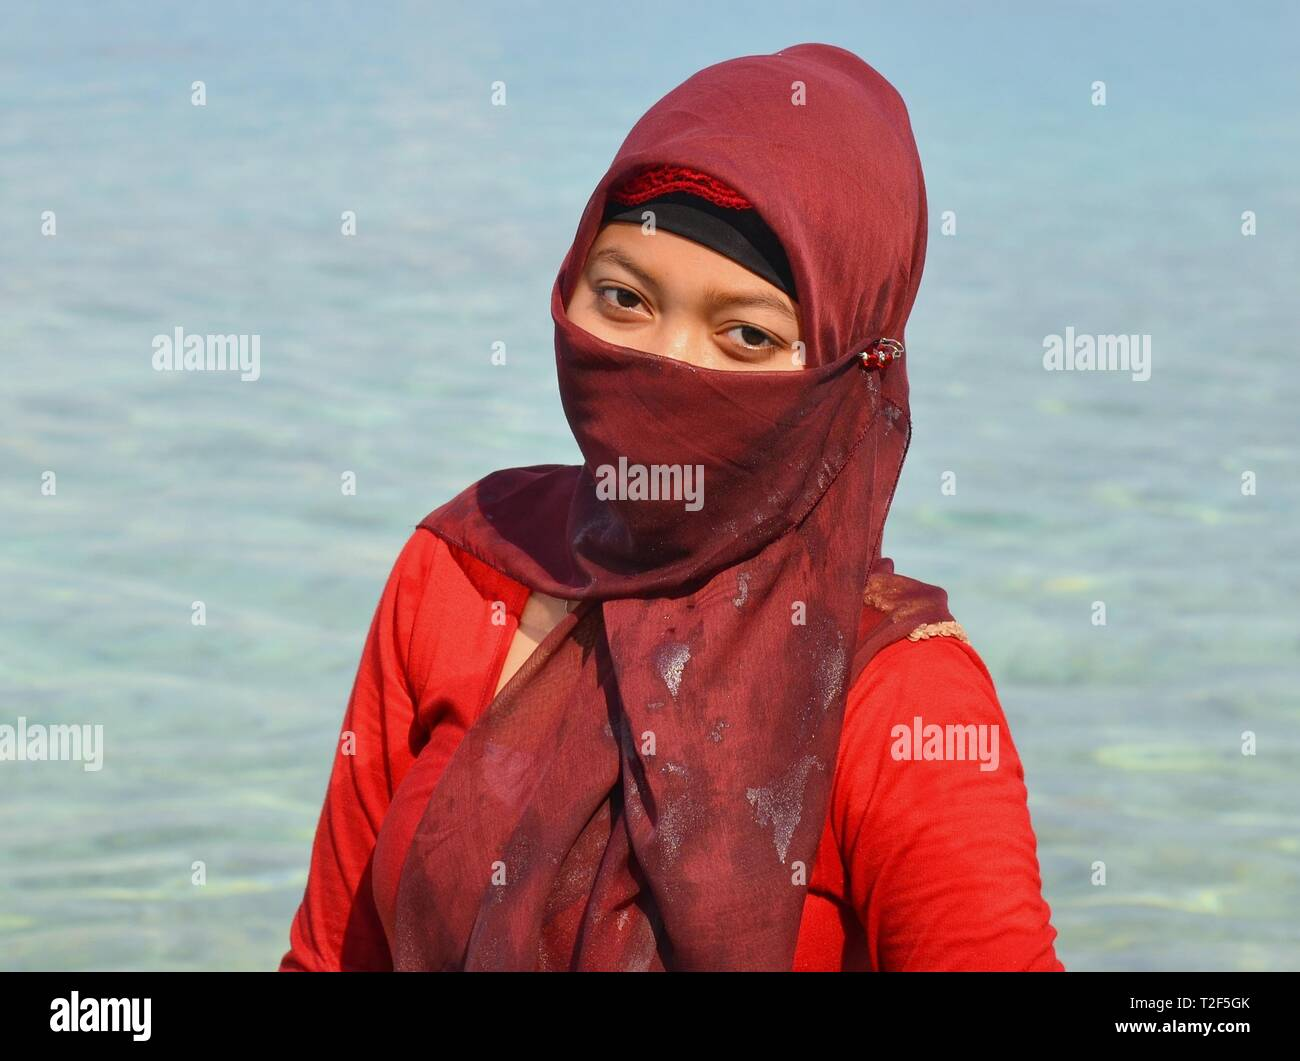 Indonesian Muslim girl at the beach wears a wet, maroon-coloured hijab with a face veil (yashmak) and poses for the camera. - Stock Image